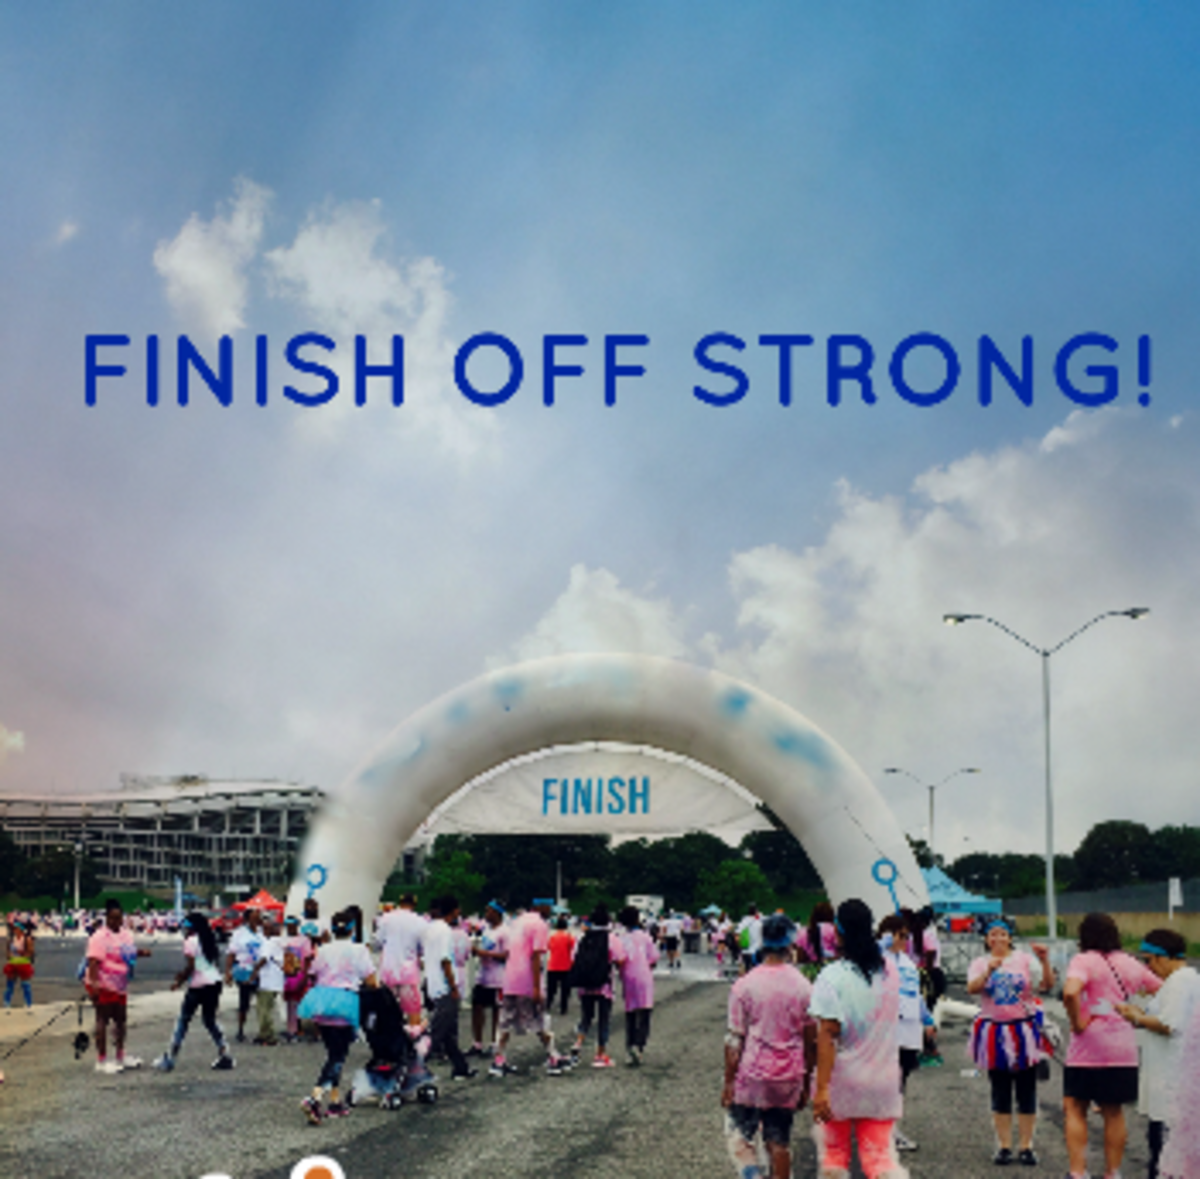 Join some friends for a jog and finish strong till the end.